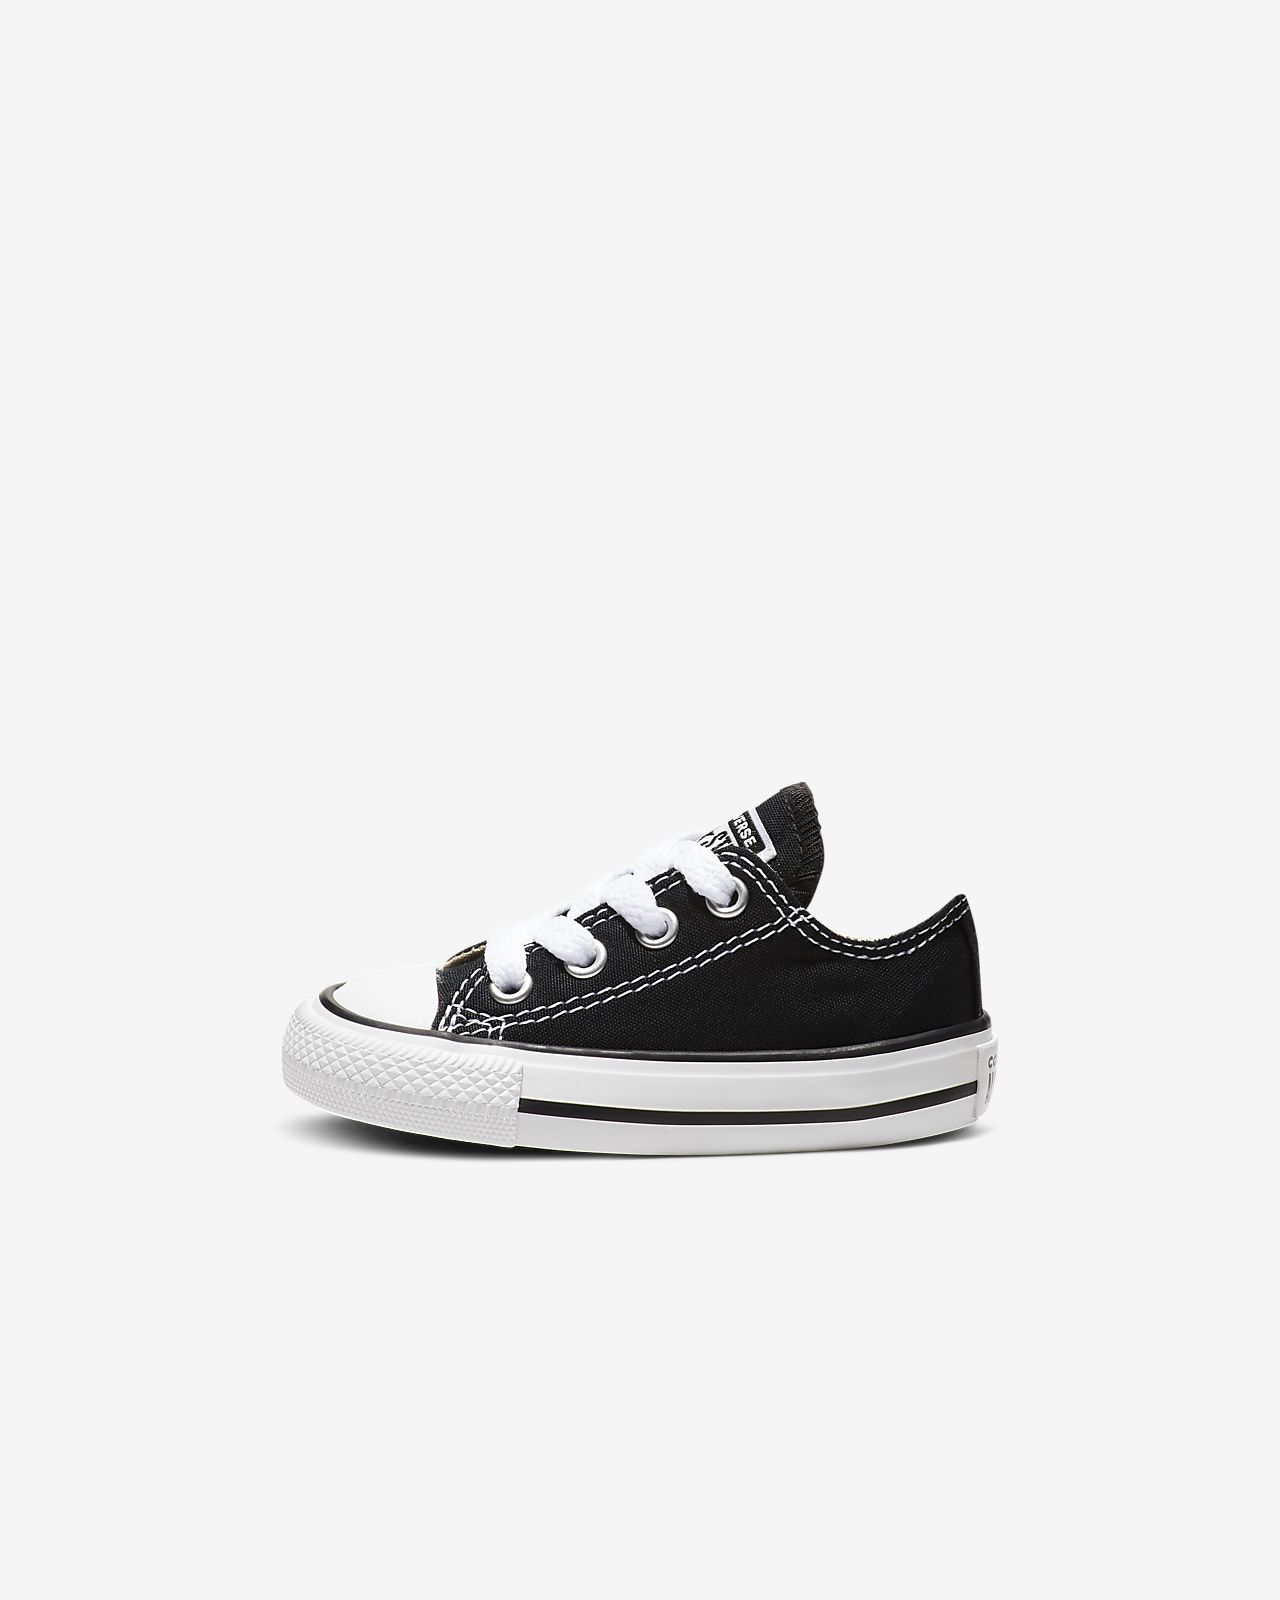 8cffae5e2774 Converse Chuck Taylor All Star Low Top Infant Toddler Shoe. Nike.com